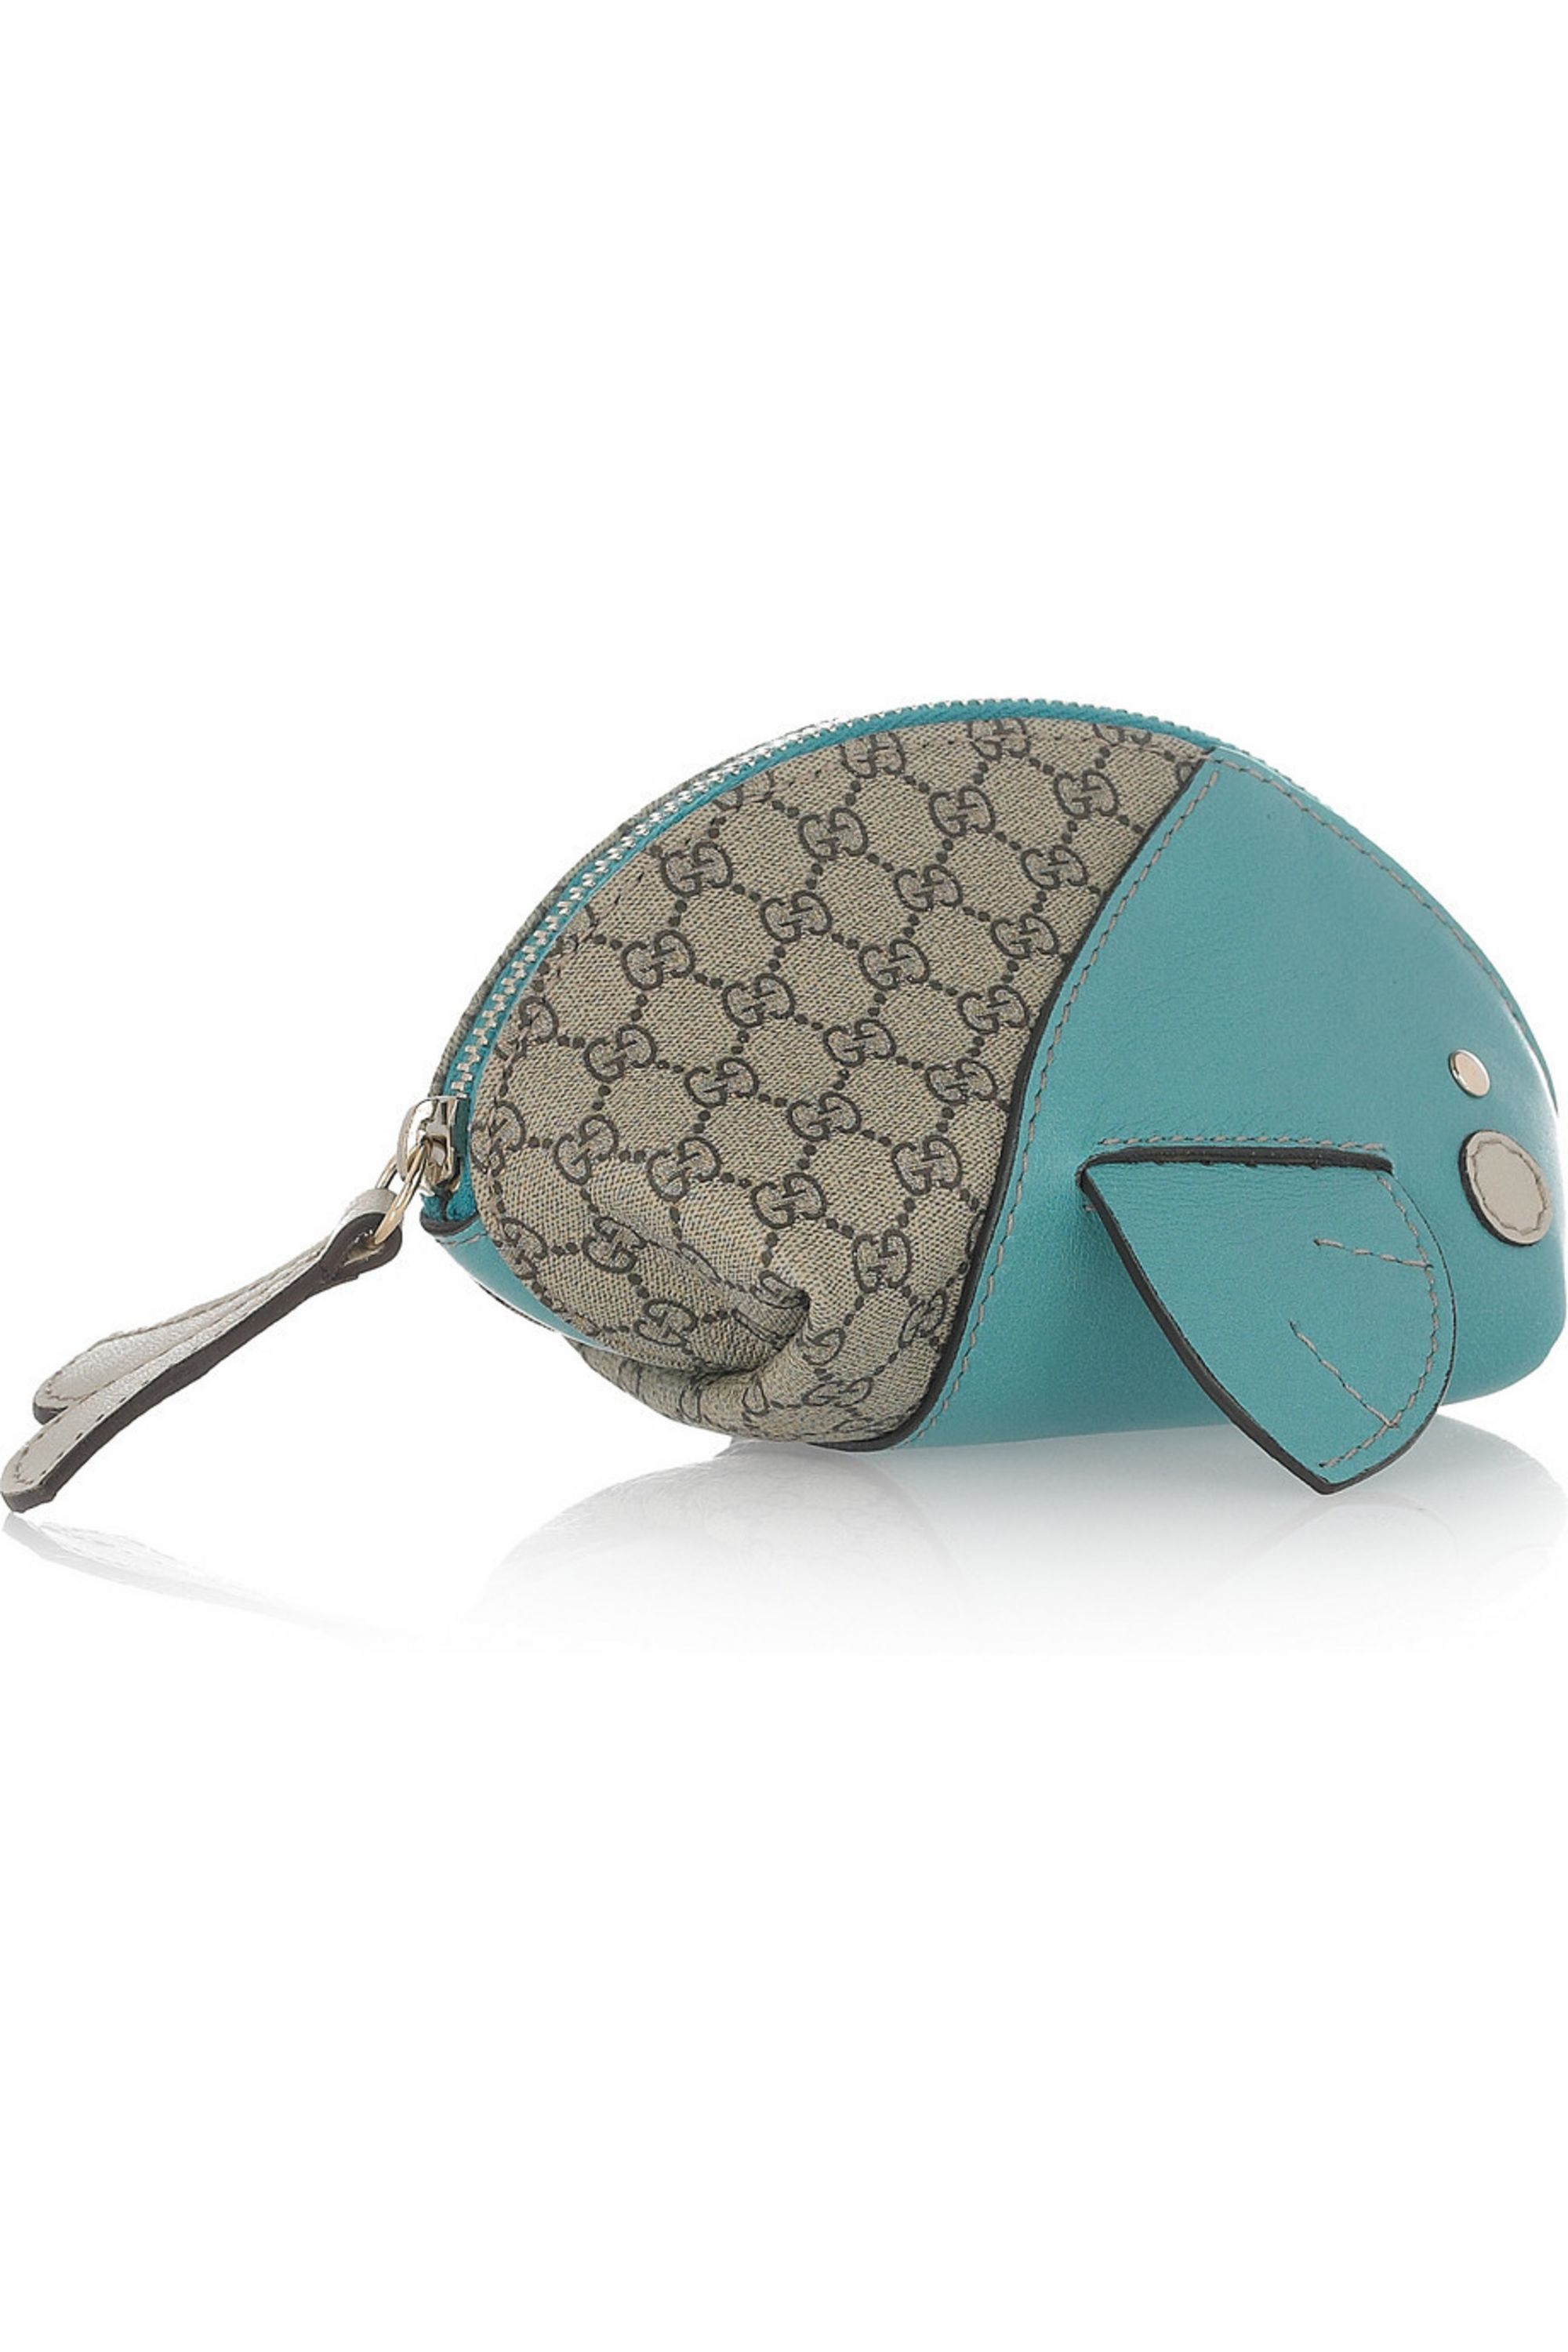 Gucci Moby Dick leather and canvas coin purse